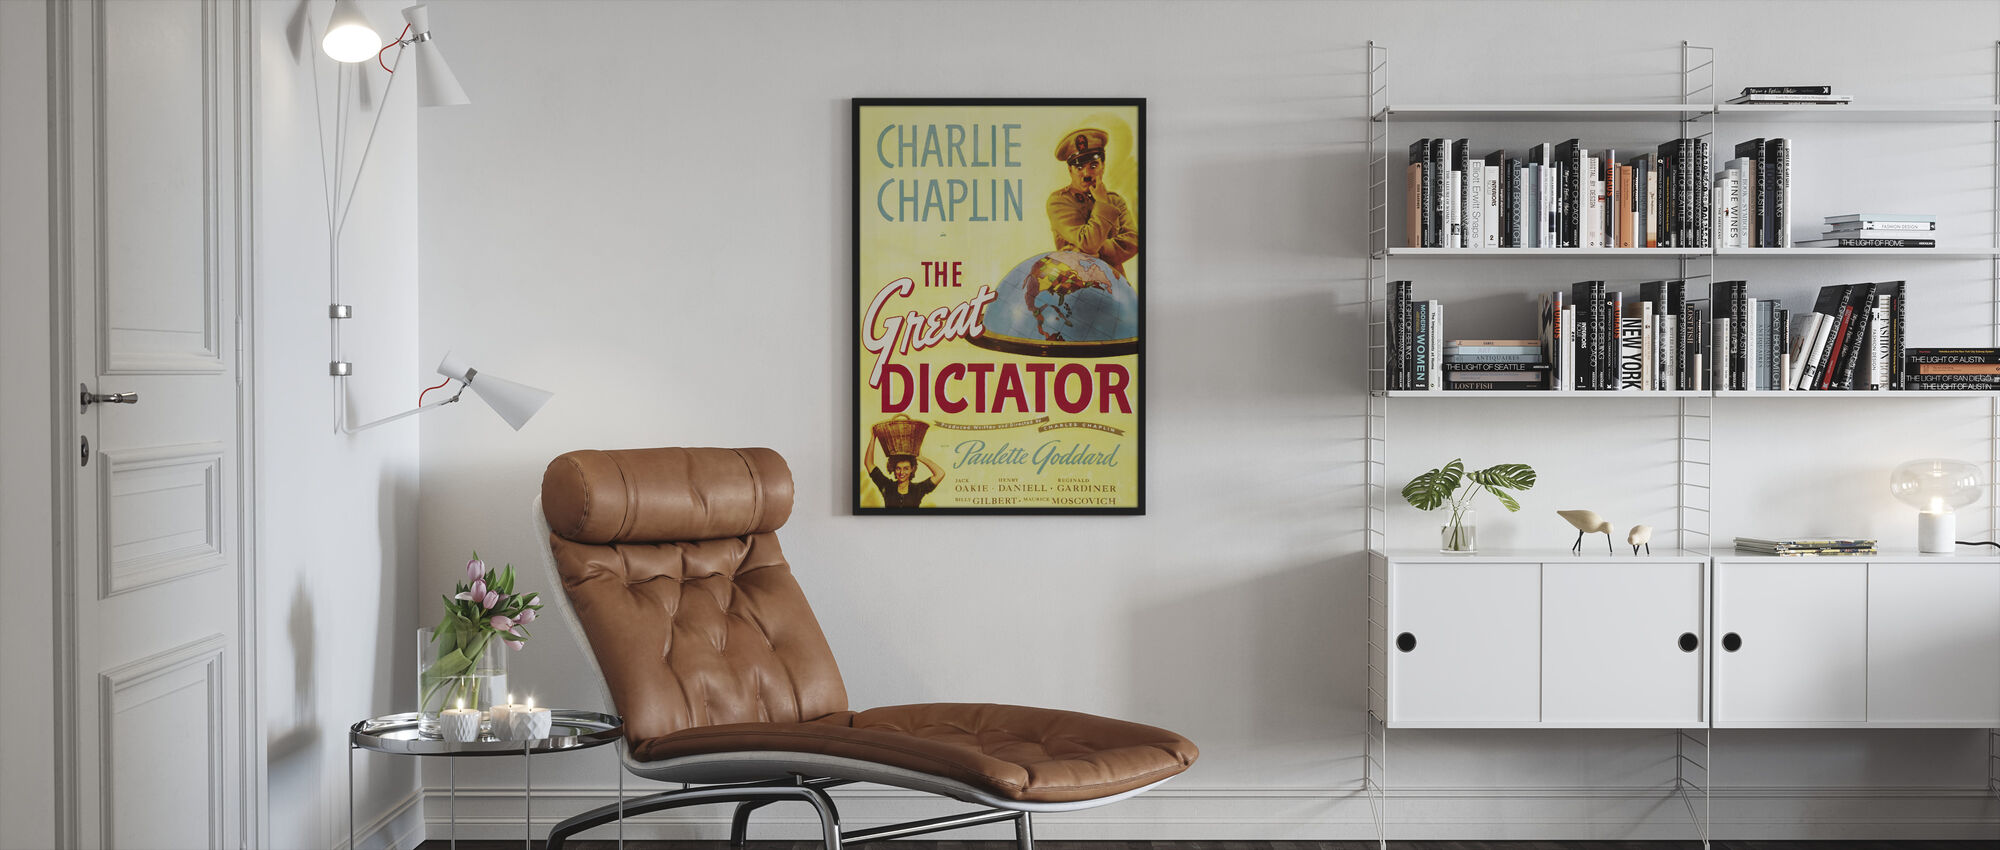 Charlie Chaplin in the Great Dictator - Framed print - Living Room